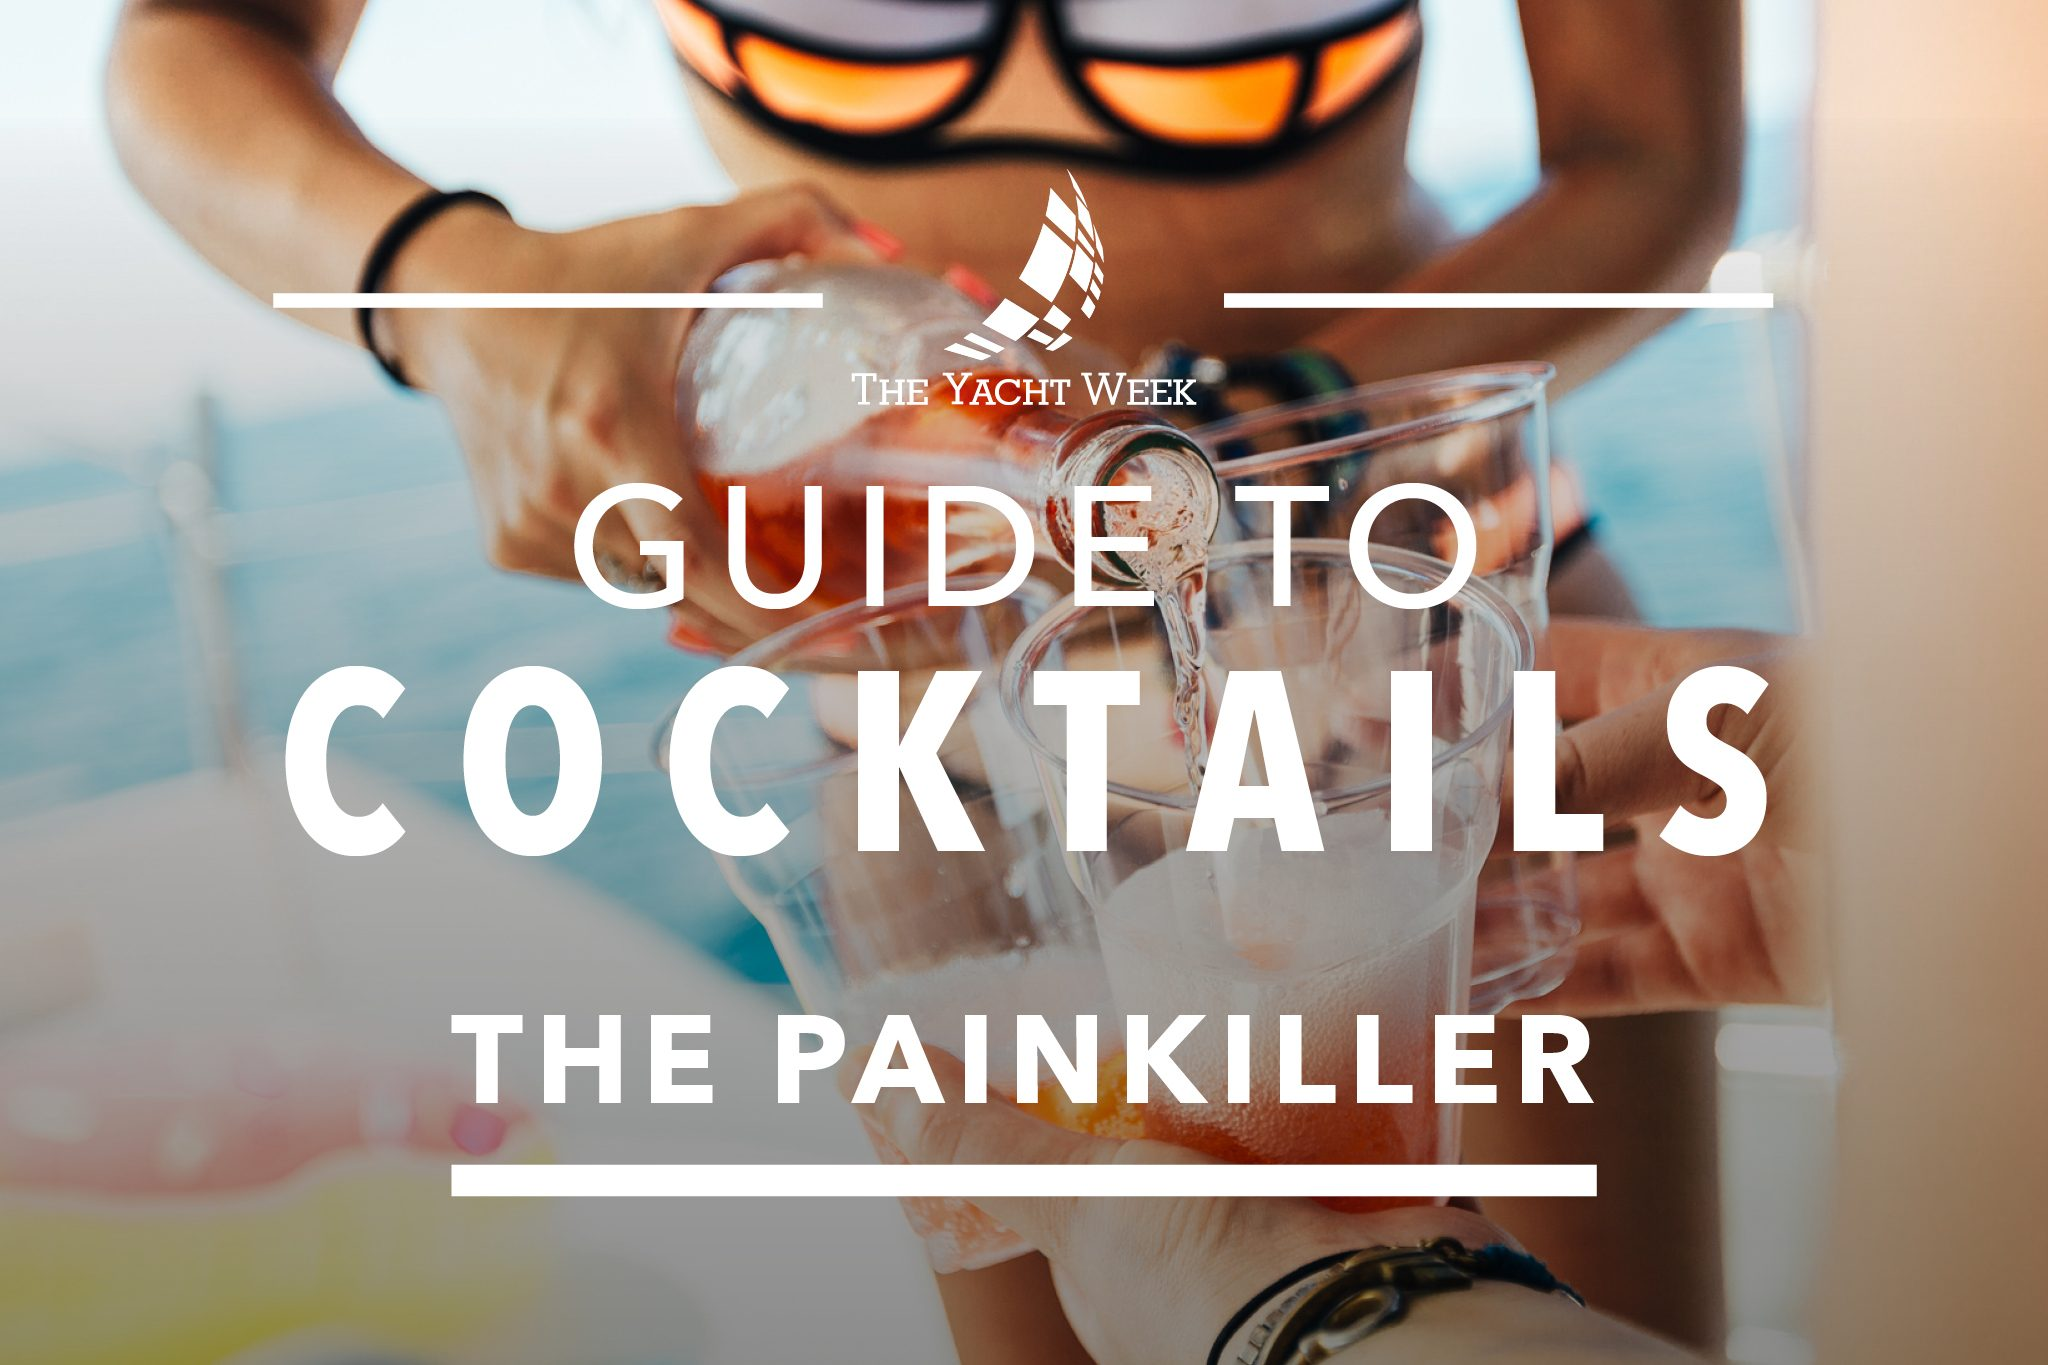 King of Cocktails: the Painkiller